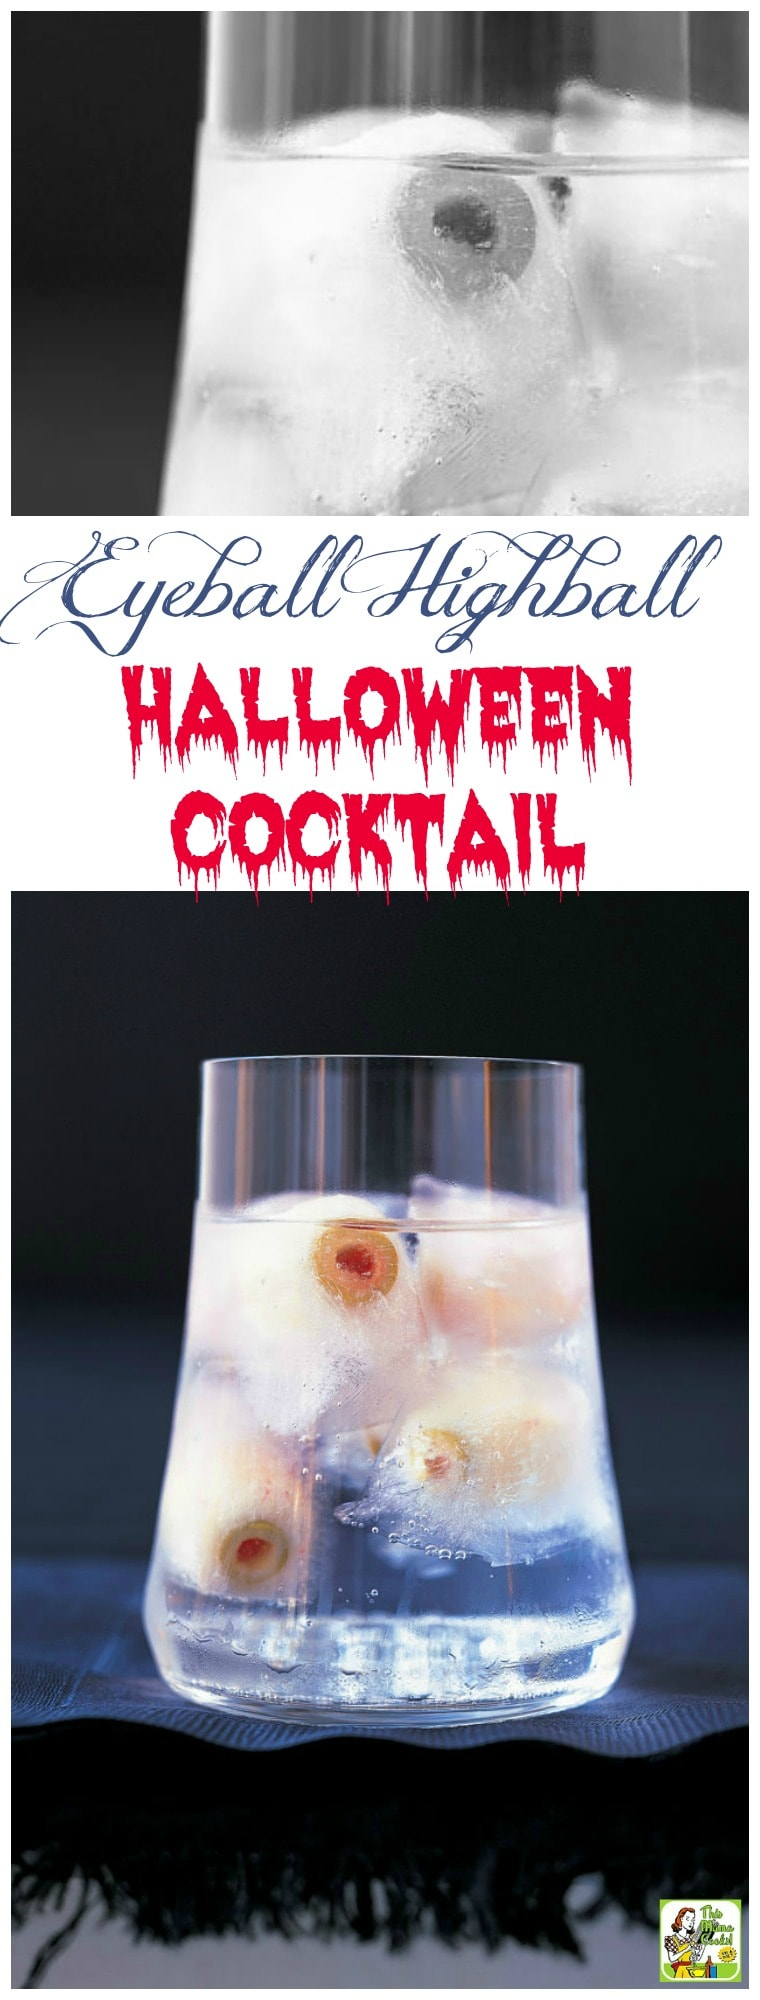 "This Halloween Martini is a spooky highball drink recipe that says, ""Here's looking at you, kid!"" It comes with tips for making Halloween drinks for kids and Creepy Frozen Eyeballs made from radishes stuffed with pimiento-stuffed olives. #halloween #halloweenparty #cocktails #drinks #drinking #drinkrecipes #alcohol #vodka #martini #mocktail #nonalcoholic #partyideas"